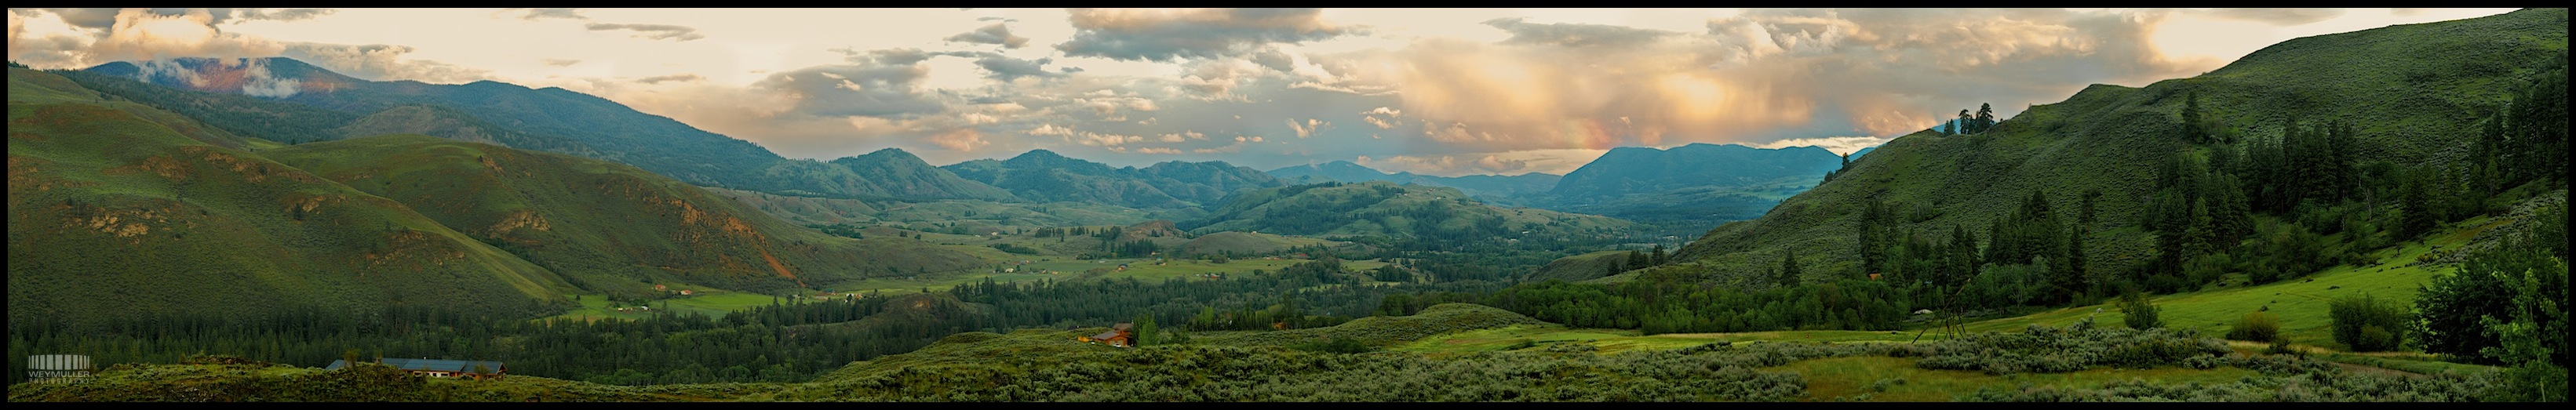 Community Methow Valley in the Spring Lush Green Fields